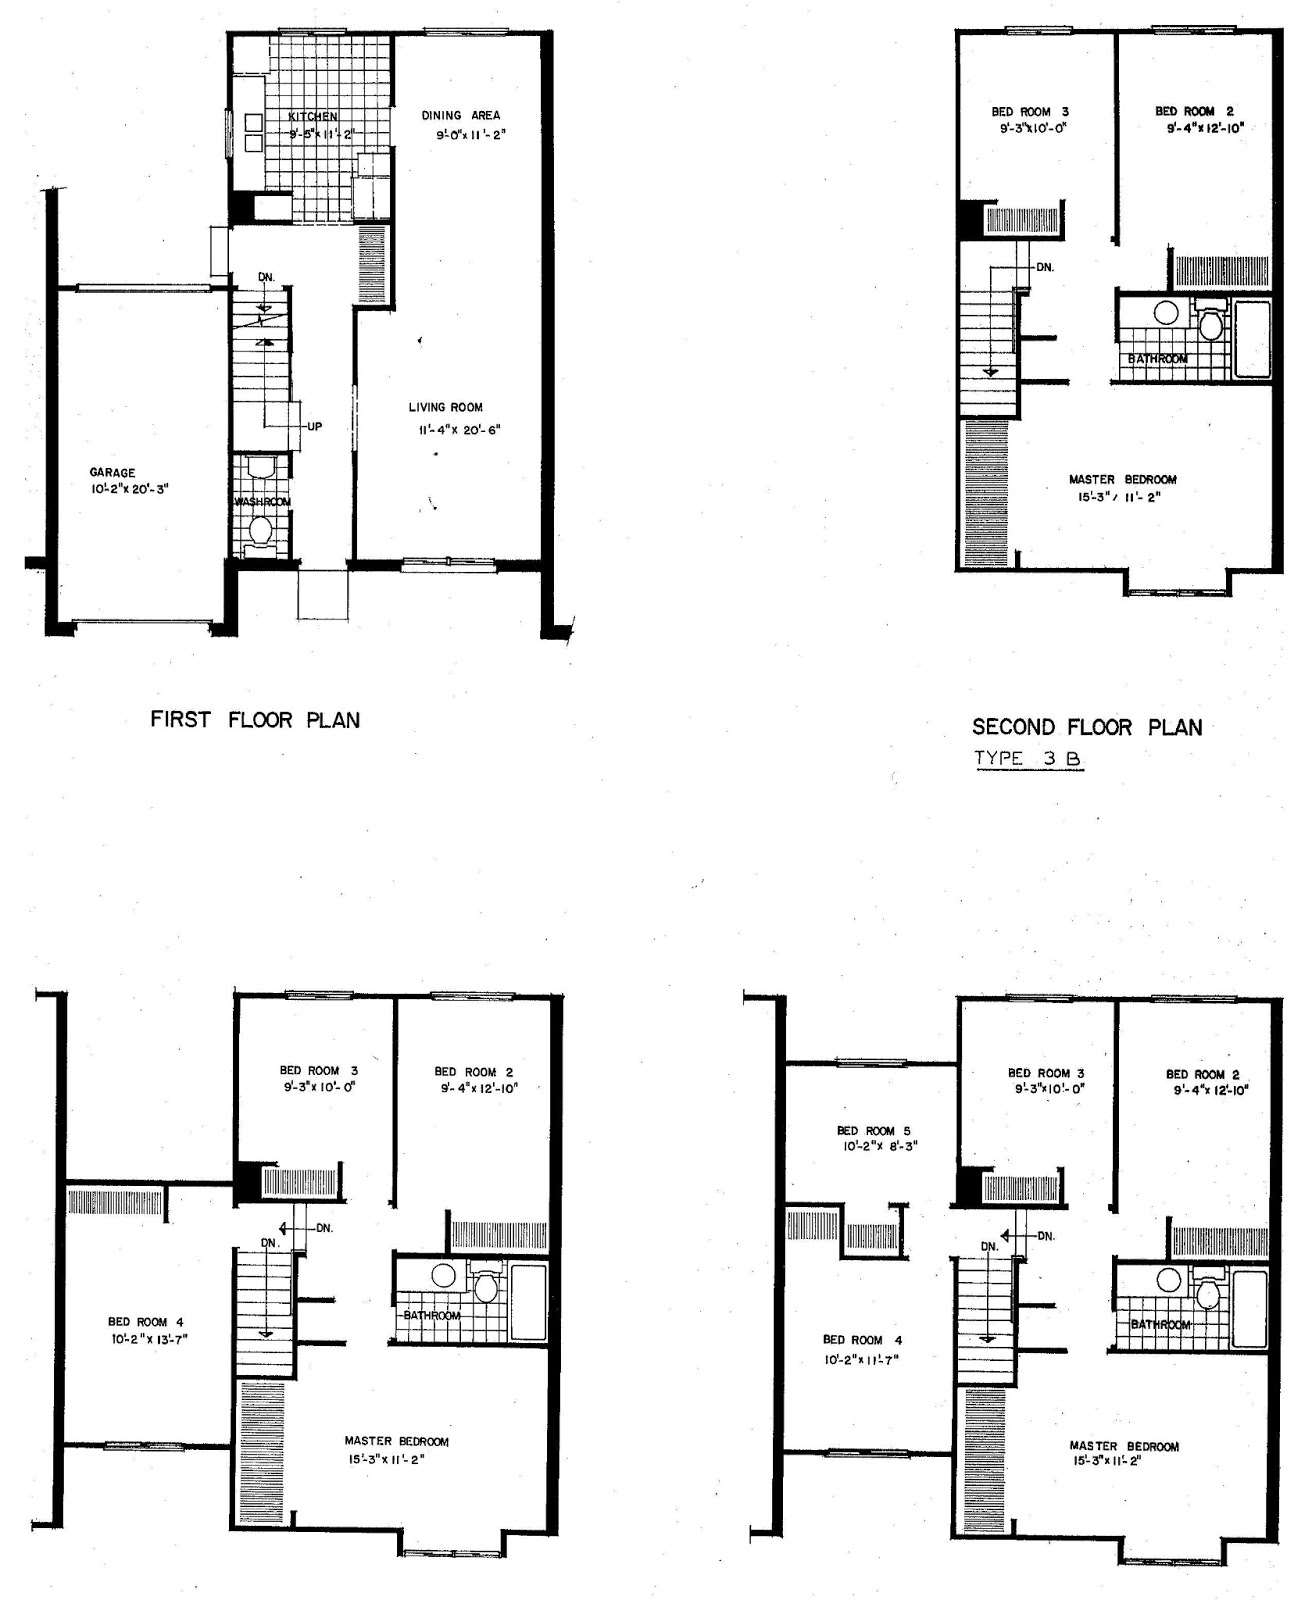 2007 12 01 nrj archive together with Organic Mountain Modern Floor Plan as well Plan details likewise 384d71105c589ed3 Architecture Ancient Egyptian Houses Ancient Greek Architecture House Plan moreover Planos De Casas Modernas. on home plans for mid century modern homes